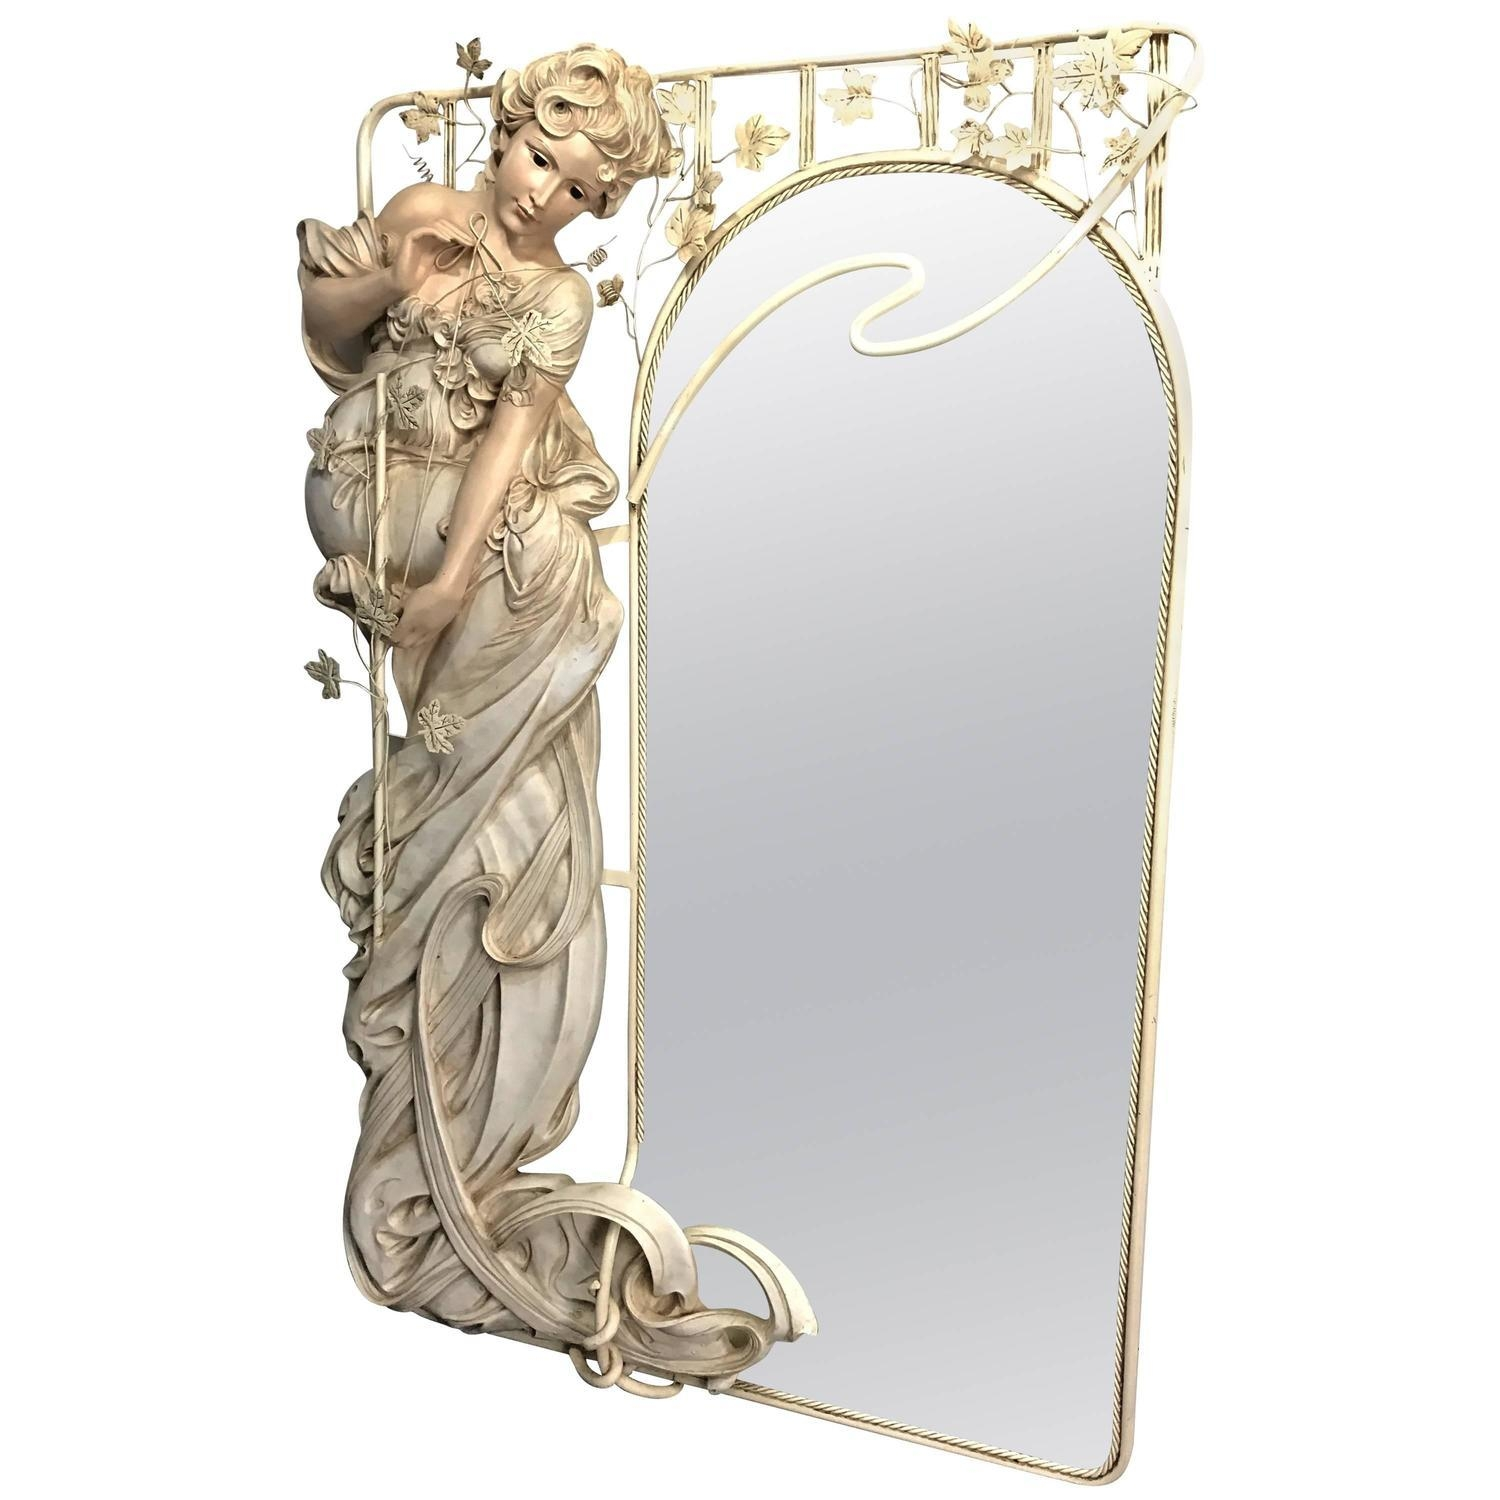 Art Nouveau Mirrors – 87 For Sale At 1Stdibs Throughout Art Nouveau Wall Mirror (Image 9 of 20)